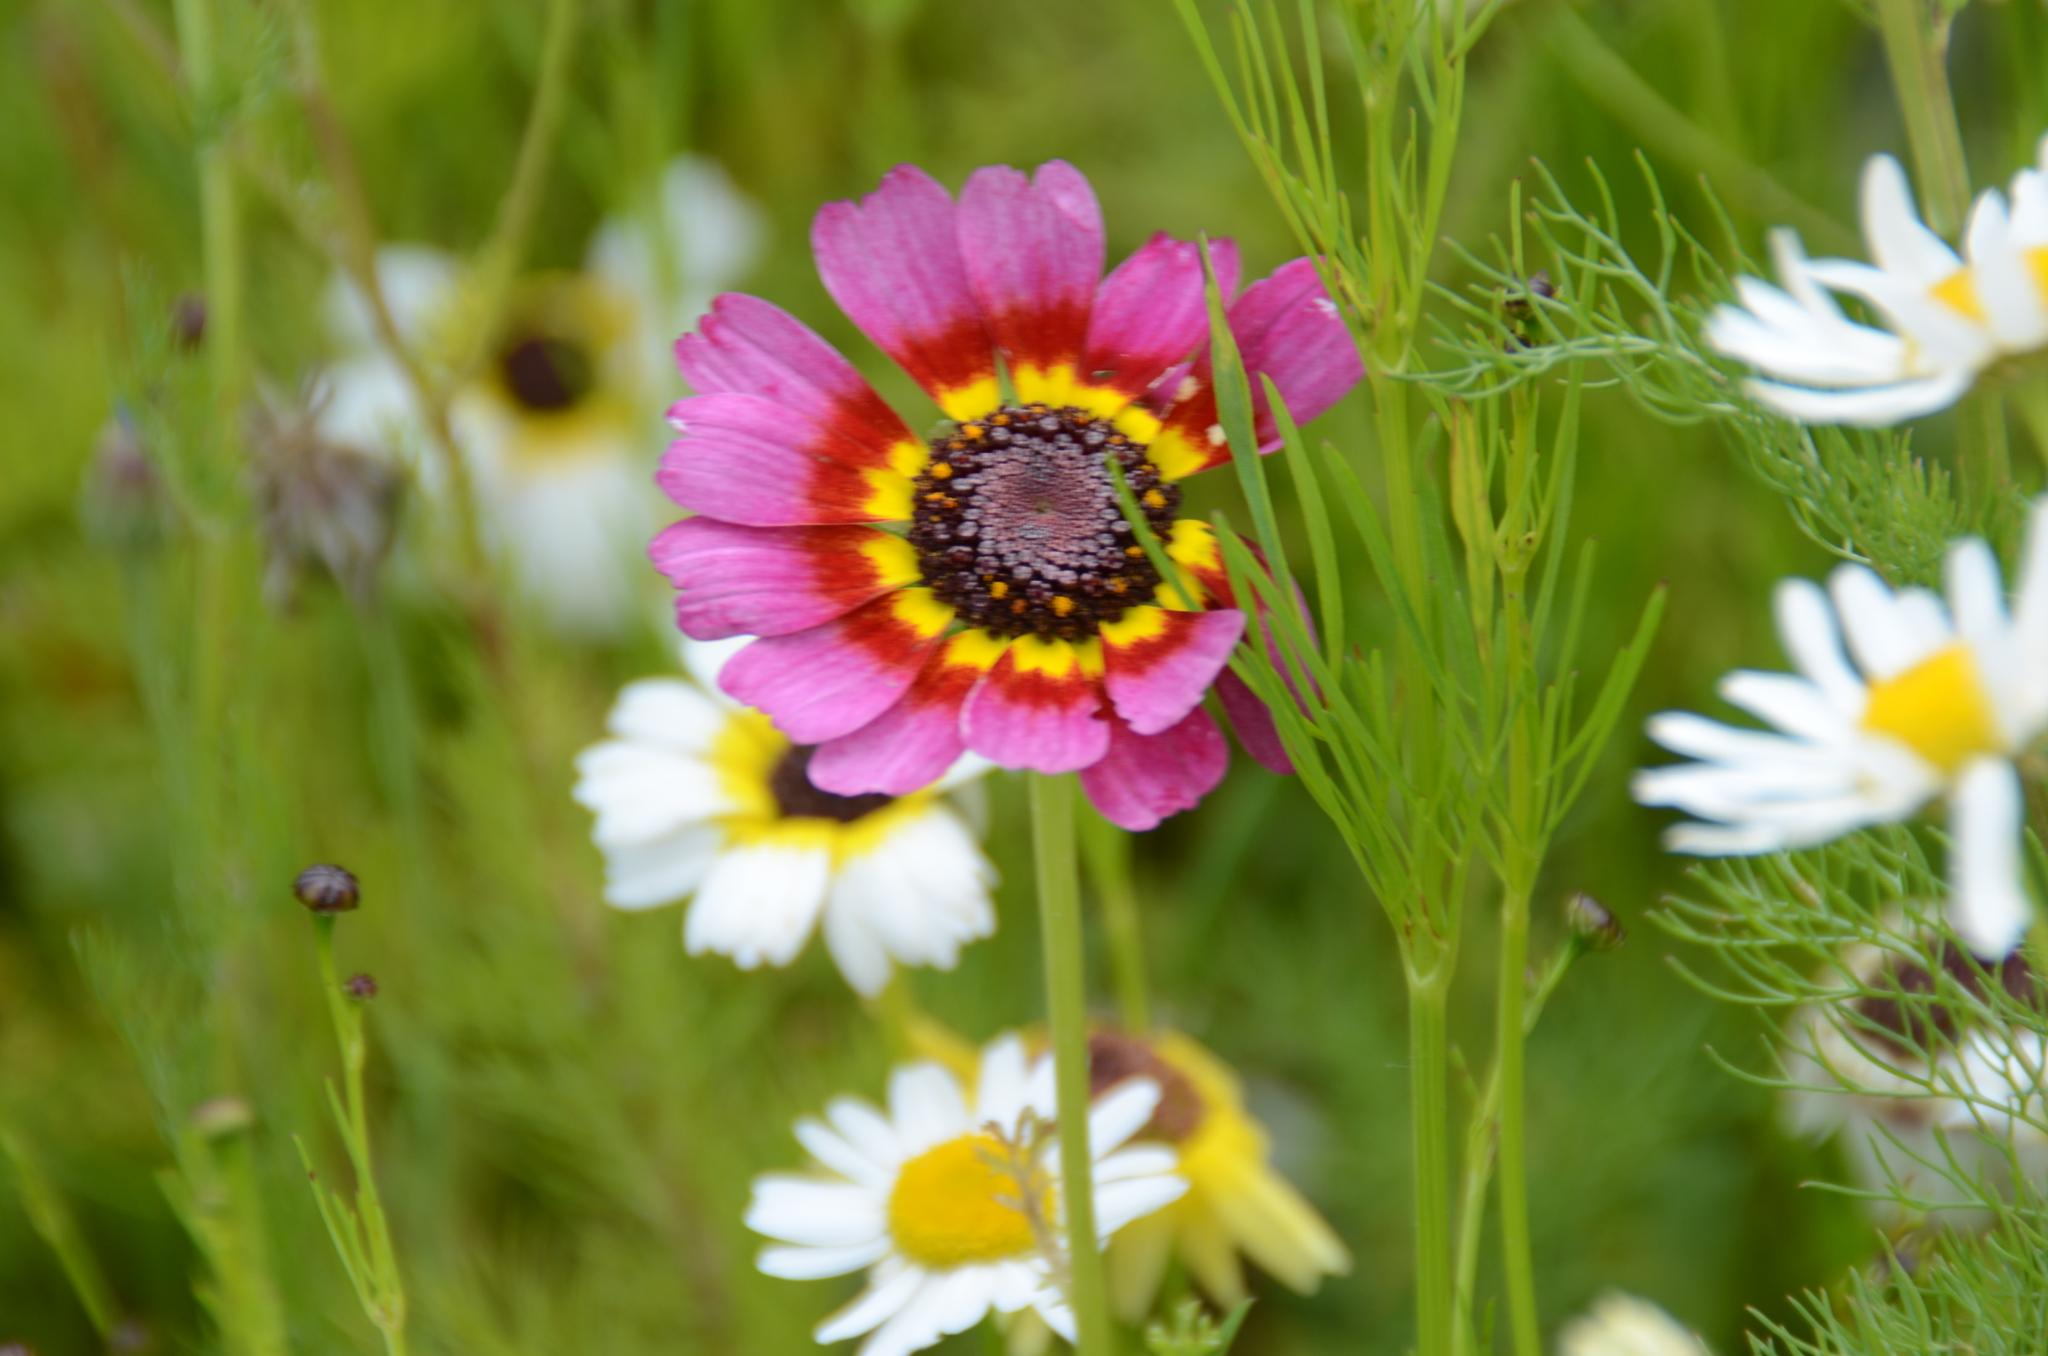 Meadow flowers by jackiwright16